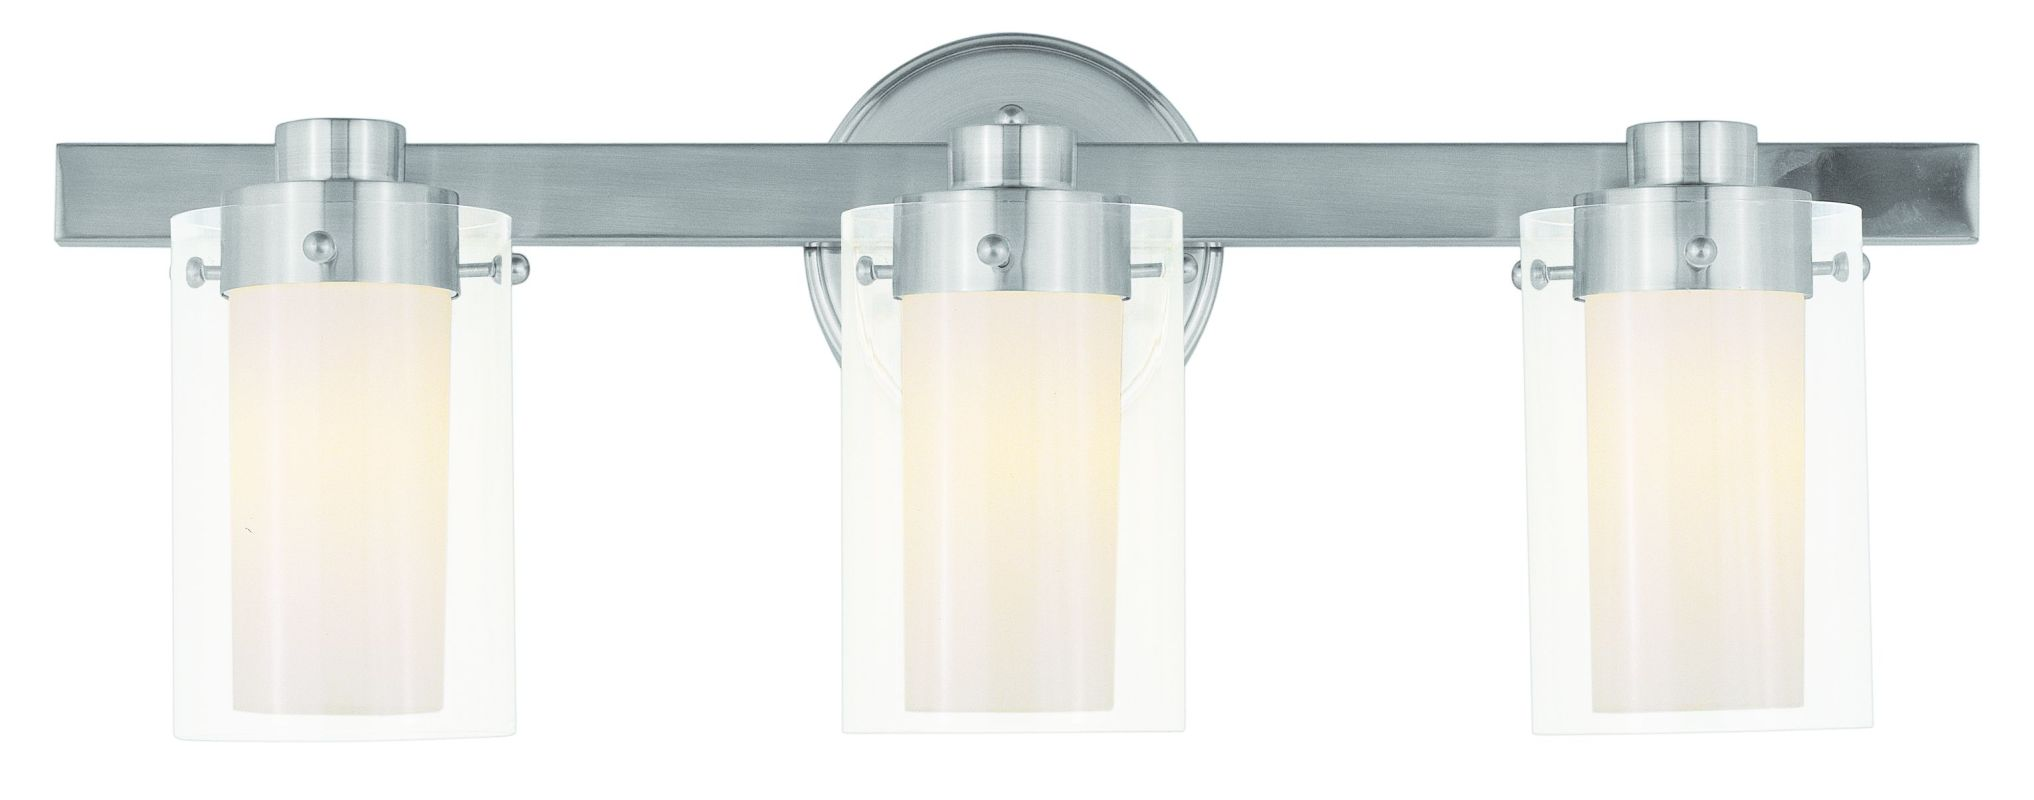 "Livex Lighting 1543 3 Light 180 Watt 22.5"" Wide Bathroom Fixture with"